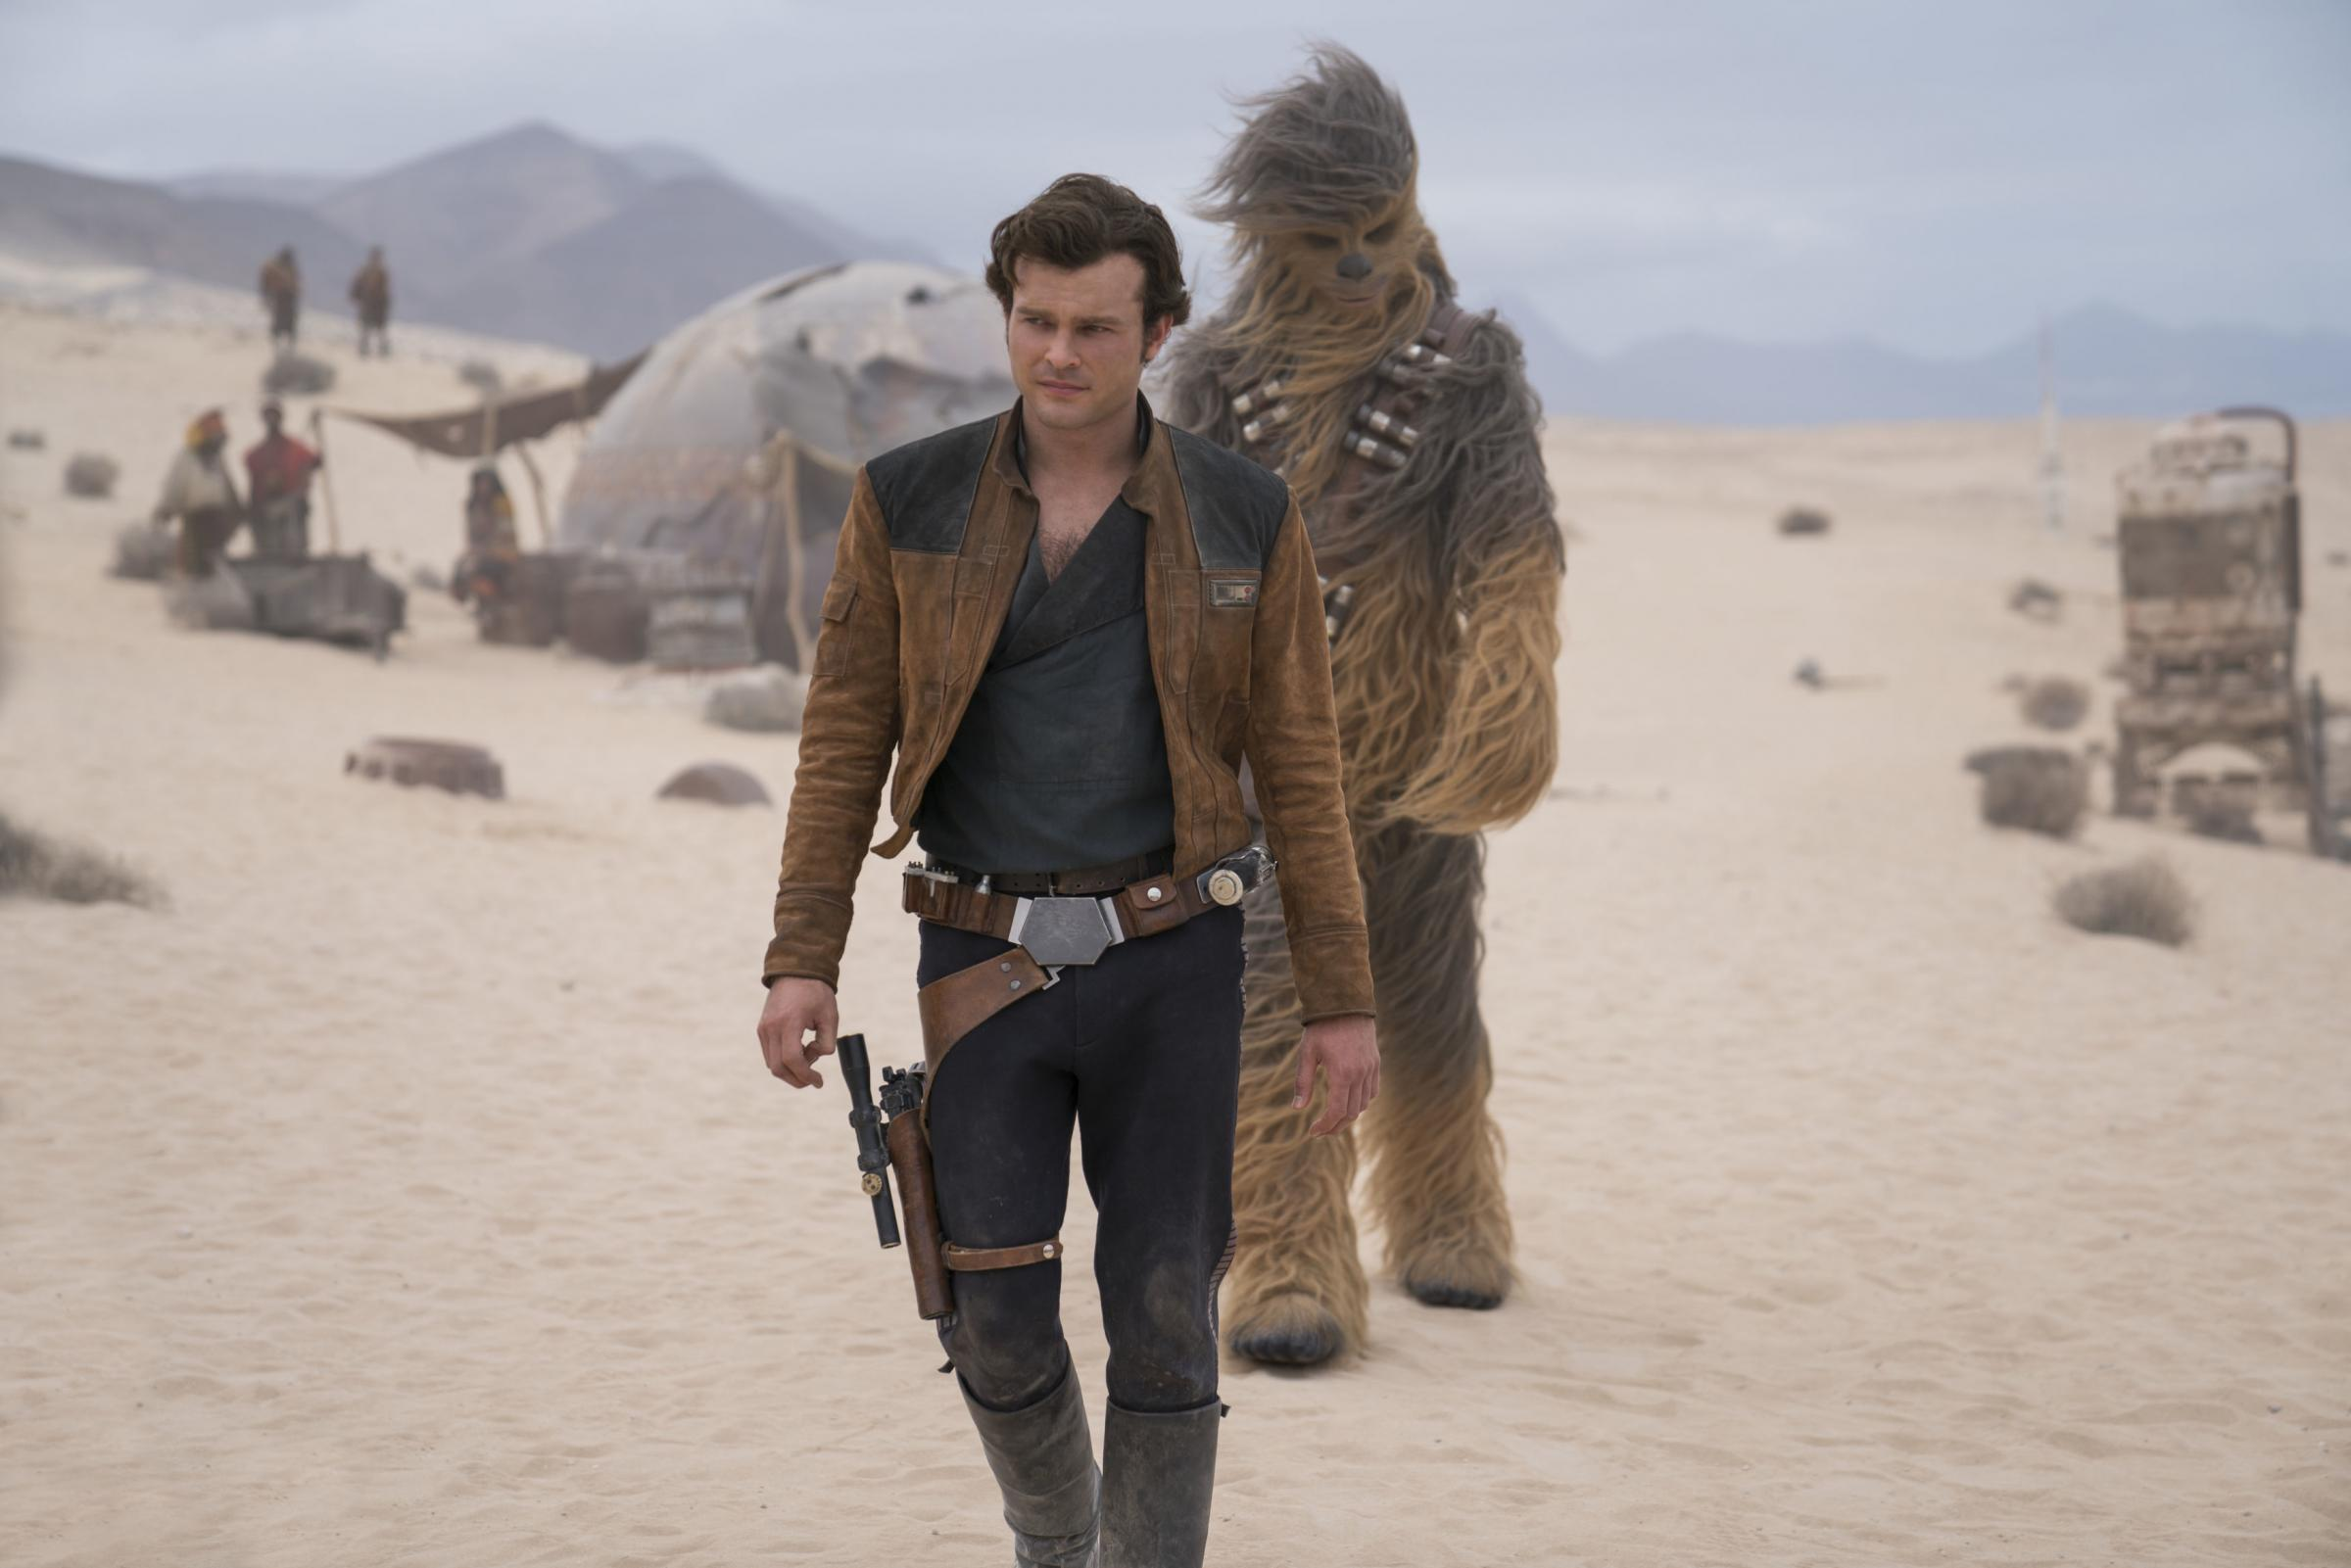 Undated film still handout from Solo: A Star Wars Story. Pictured: Alden Ehrenreich as Han Solo and Joonas Suotamo as Chewbacca. See PA Feature SHOWBIZ Film Solo. Picture credit should read: PA Photo/Lucasfilm Ltd/Jonathan Olley. WARNING: This picture mus